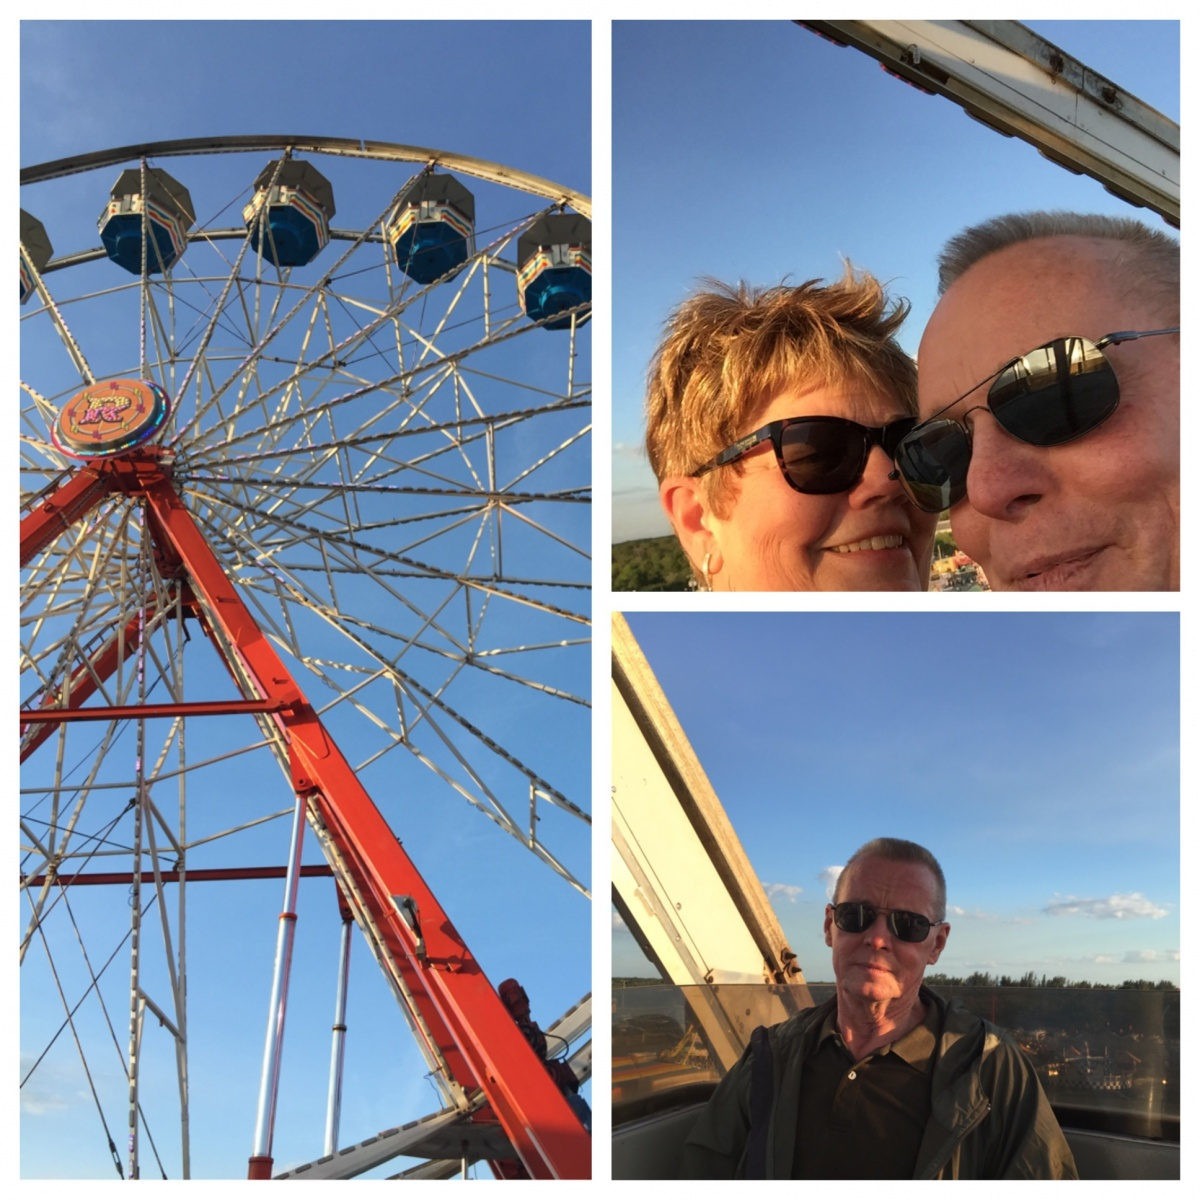 My Ferris wheel ride first time in 44 years...lol